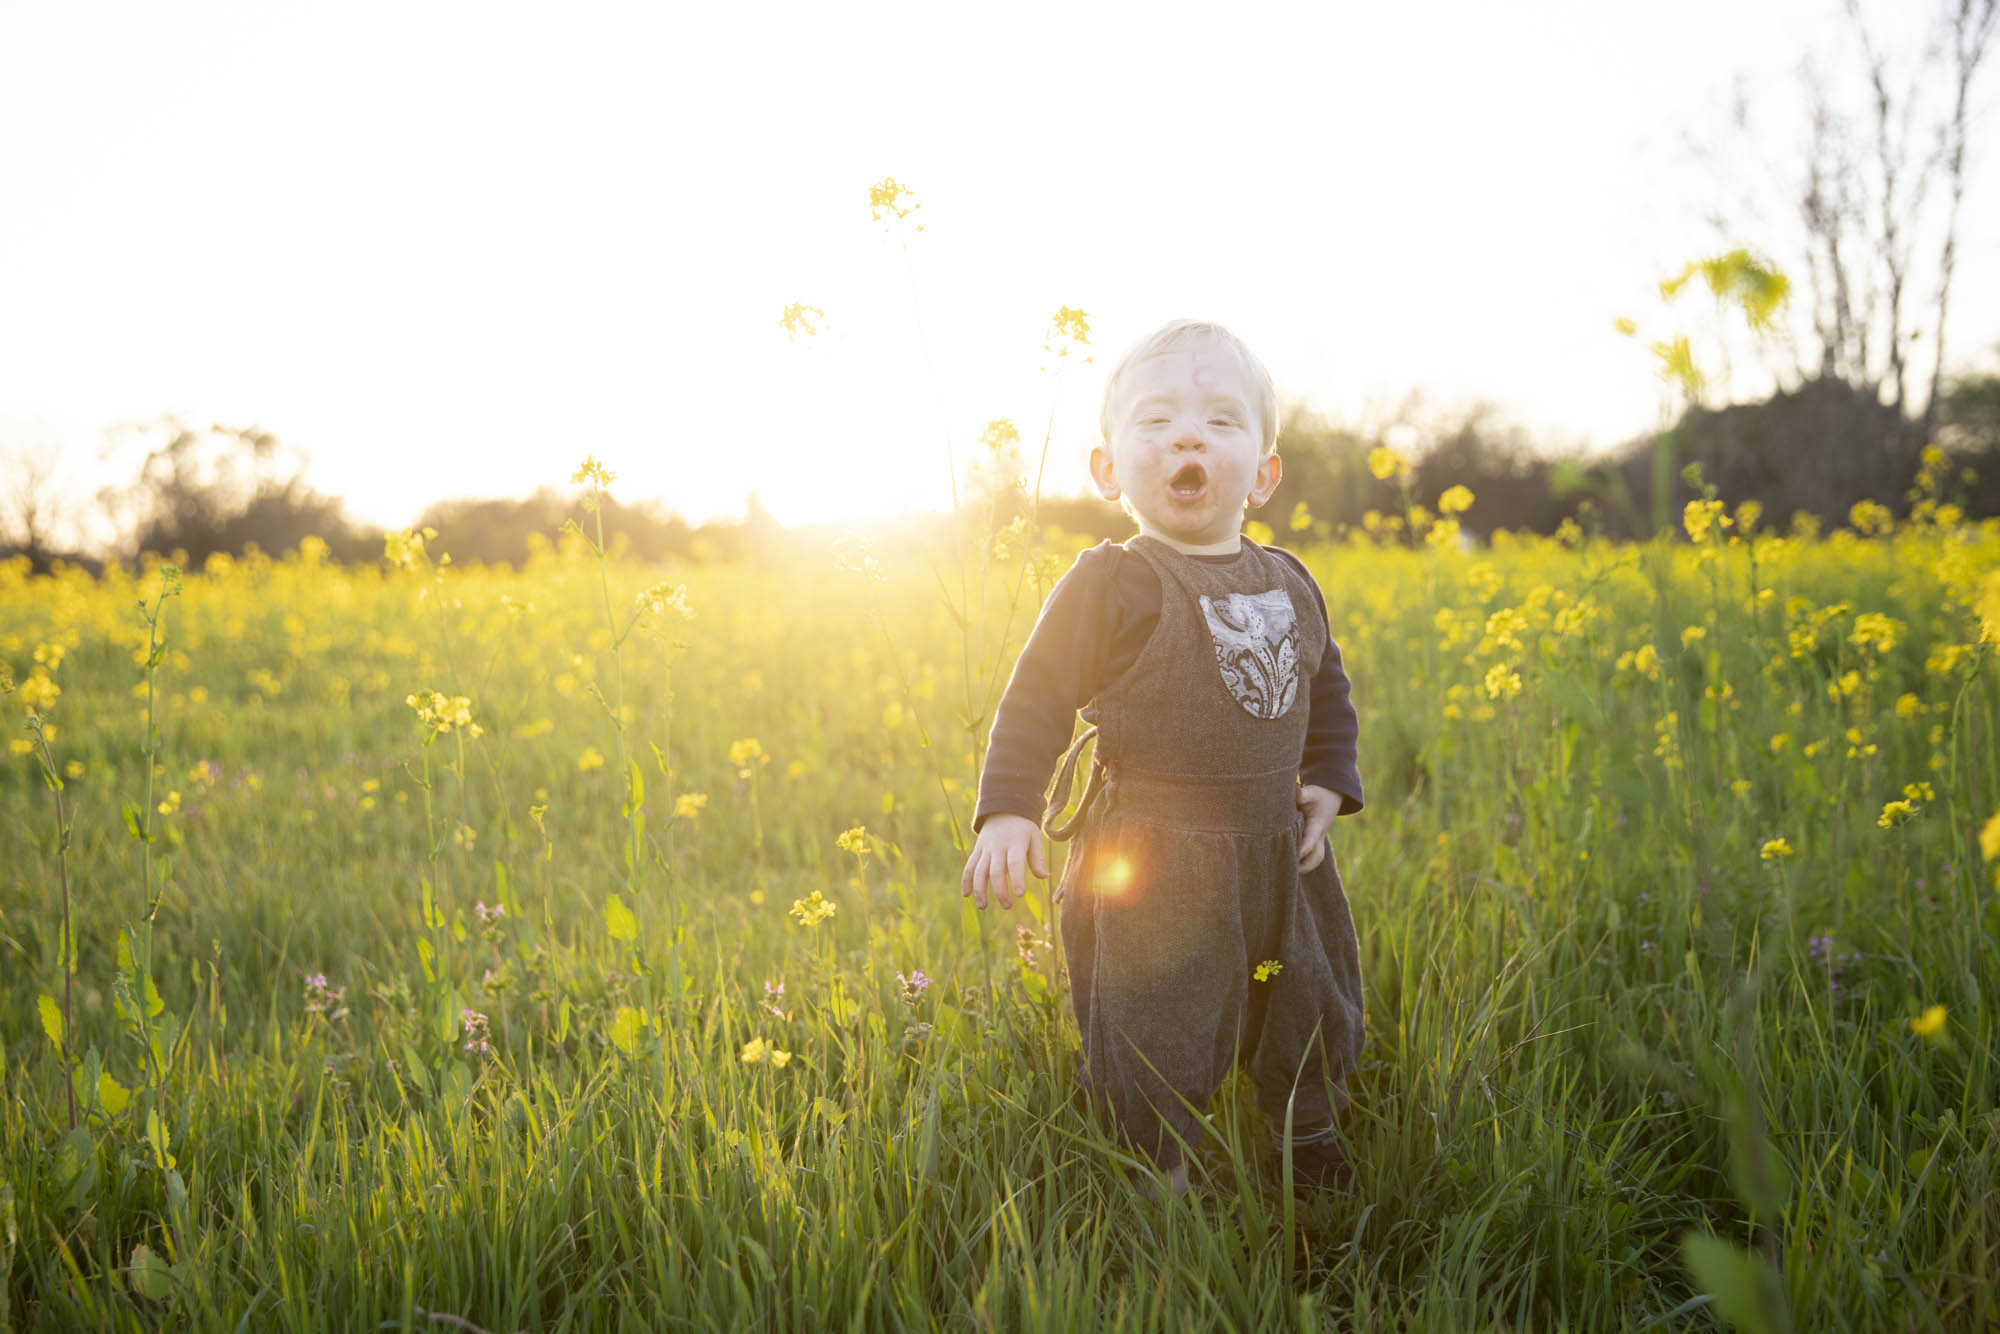 Portrait of a child in a field of wild mustard